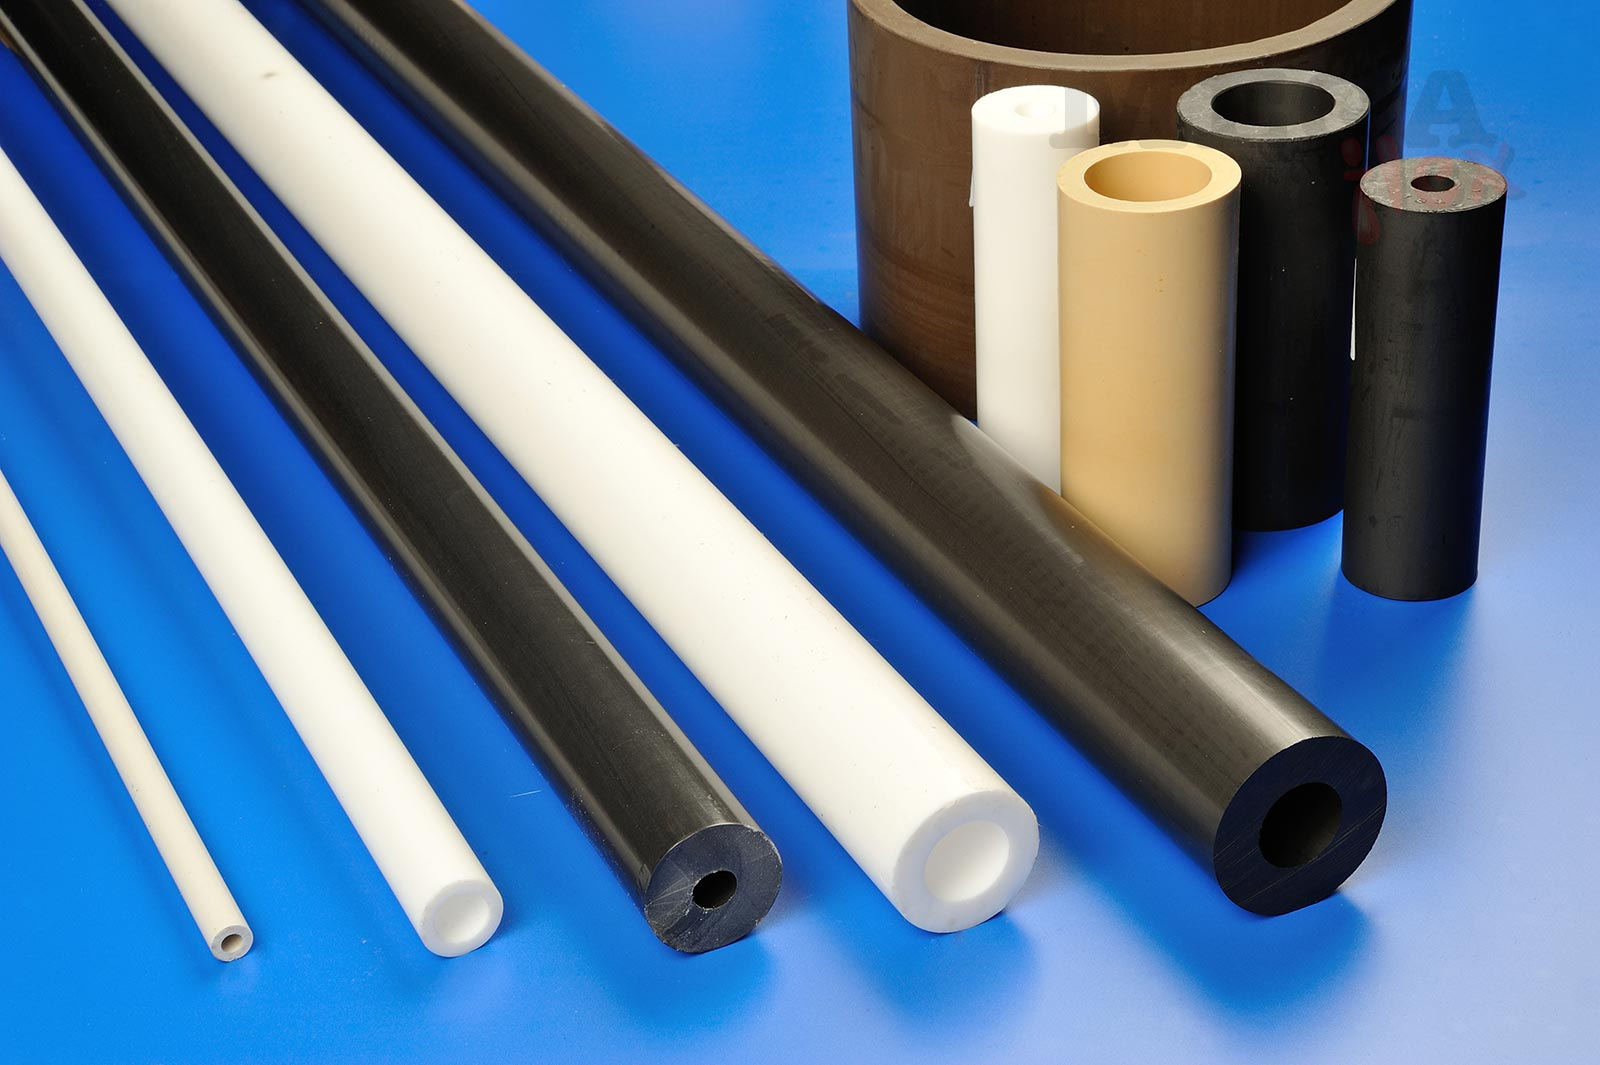 25% Glass Filled Rigid PTFE Tube (PolyTetraFluoroEthylene Pipe) Moulded in up to 300mm lengths - Usually 150mm